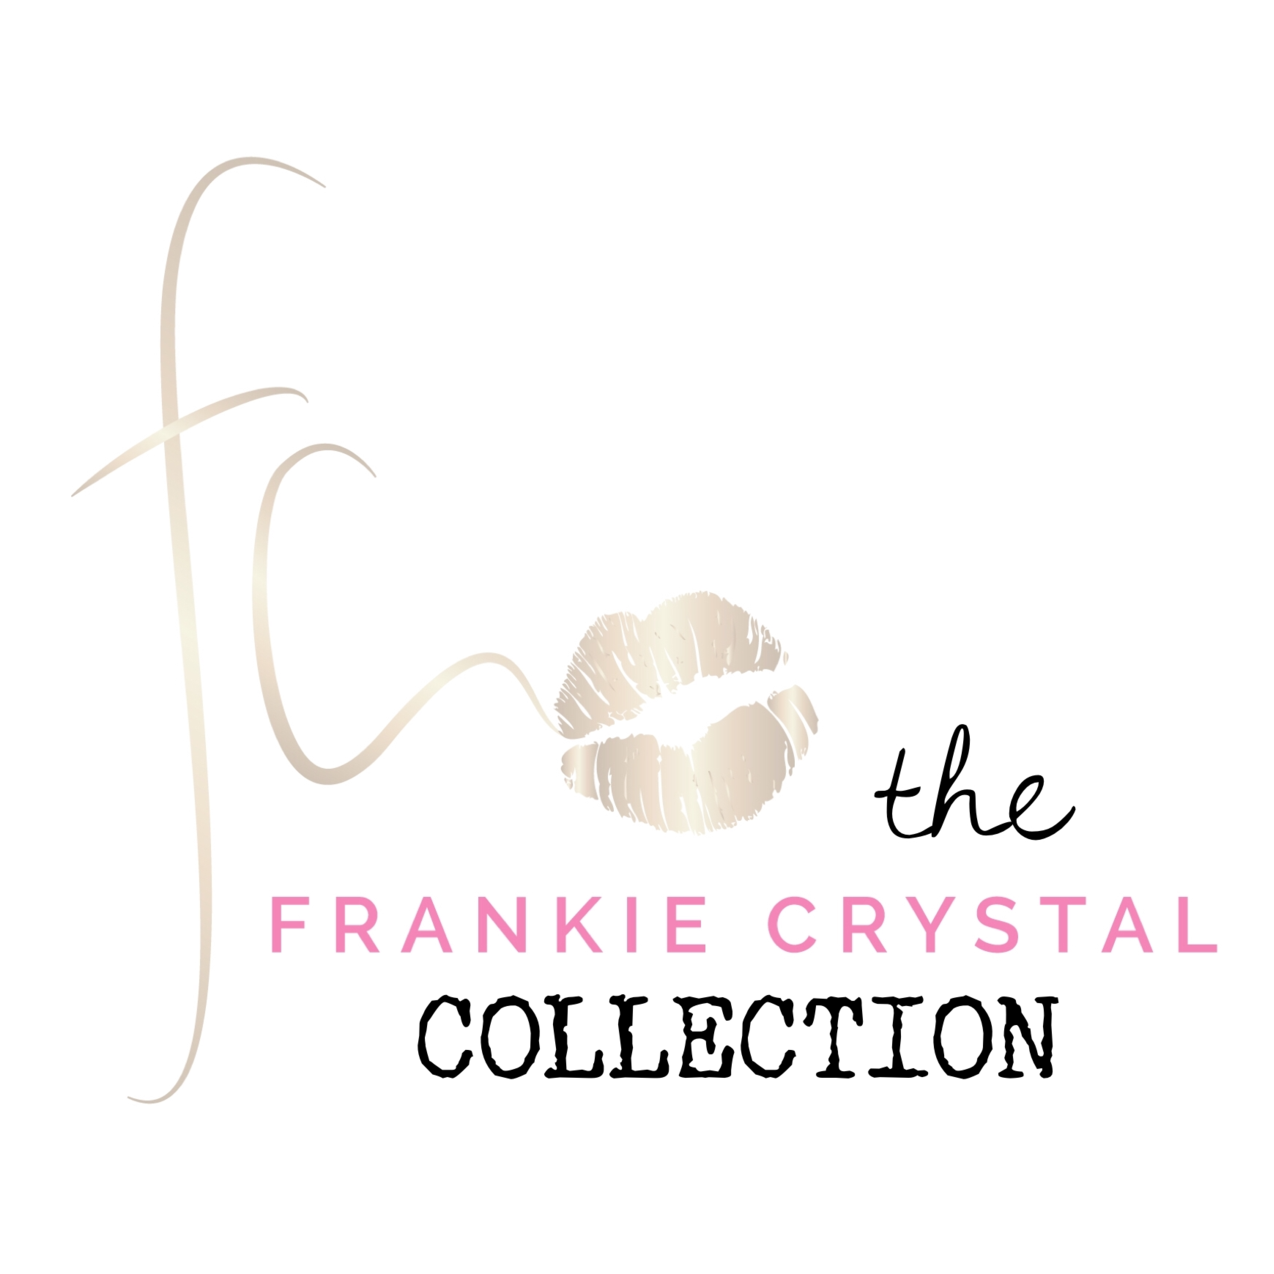 The Frankie Crystal Collection - Jacksonville, FL 32225 - (877)559-4276 | ShowMeLocal.com